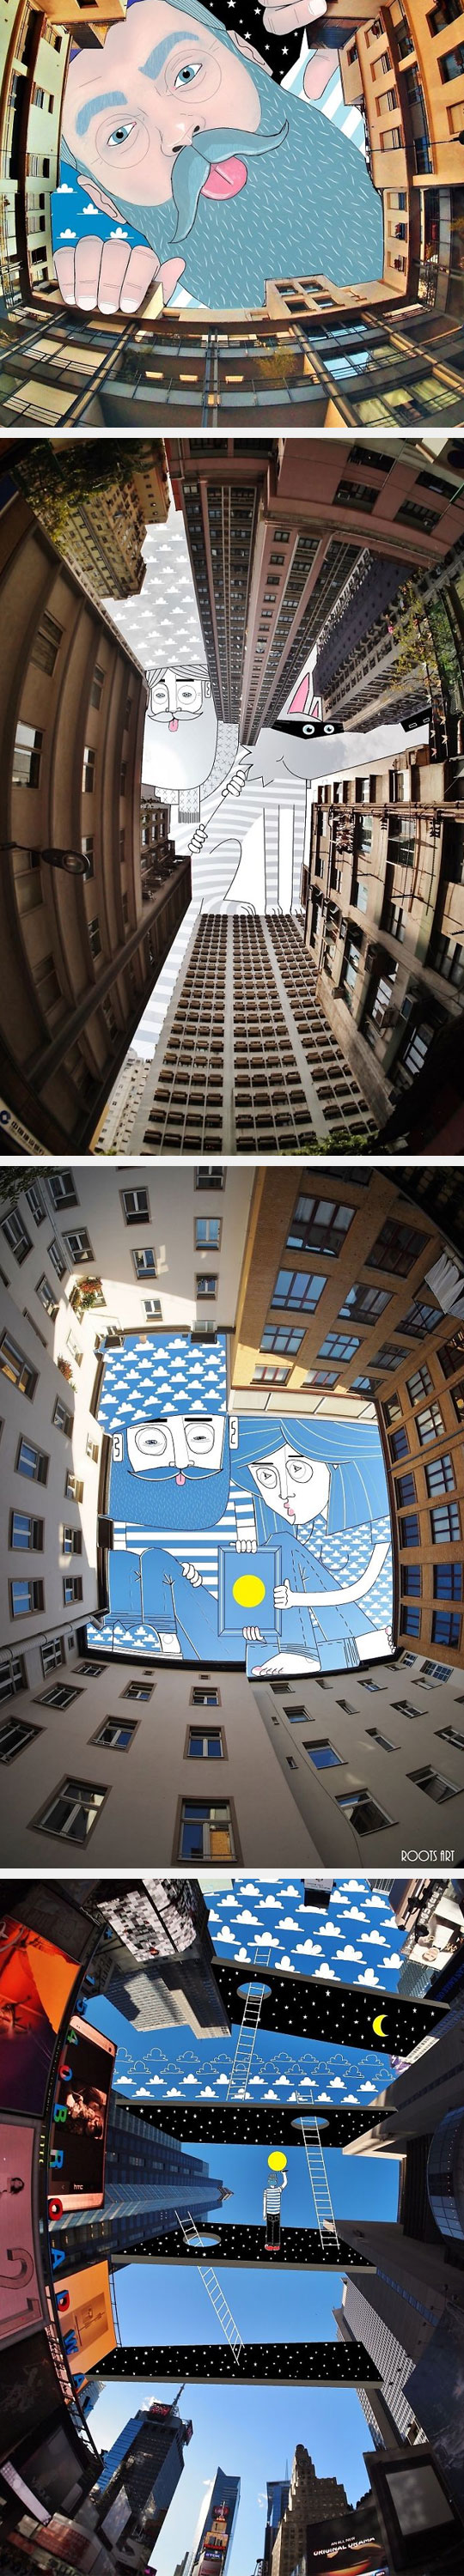 cool-painting-sky-building-drawing